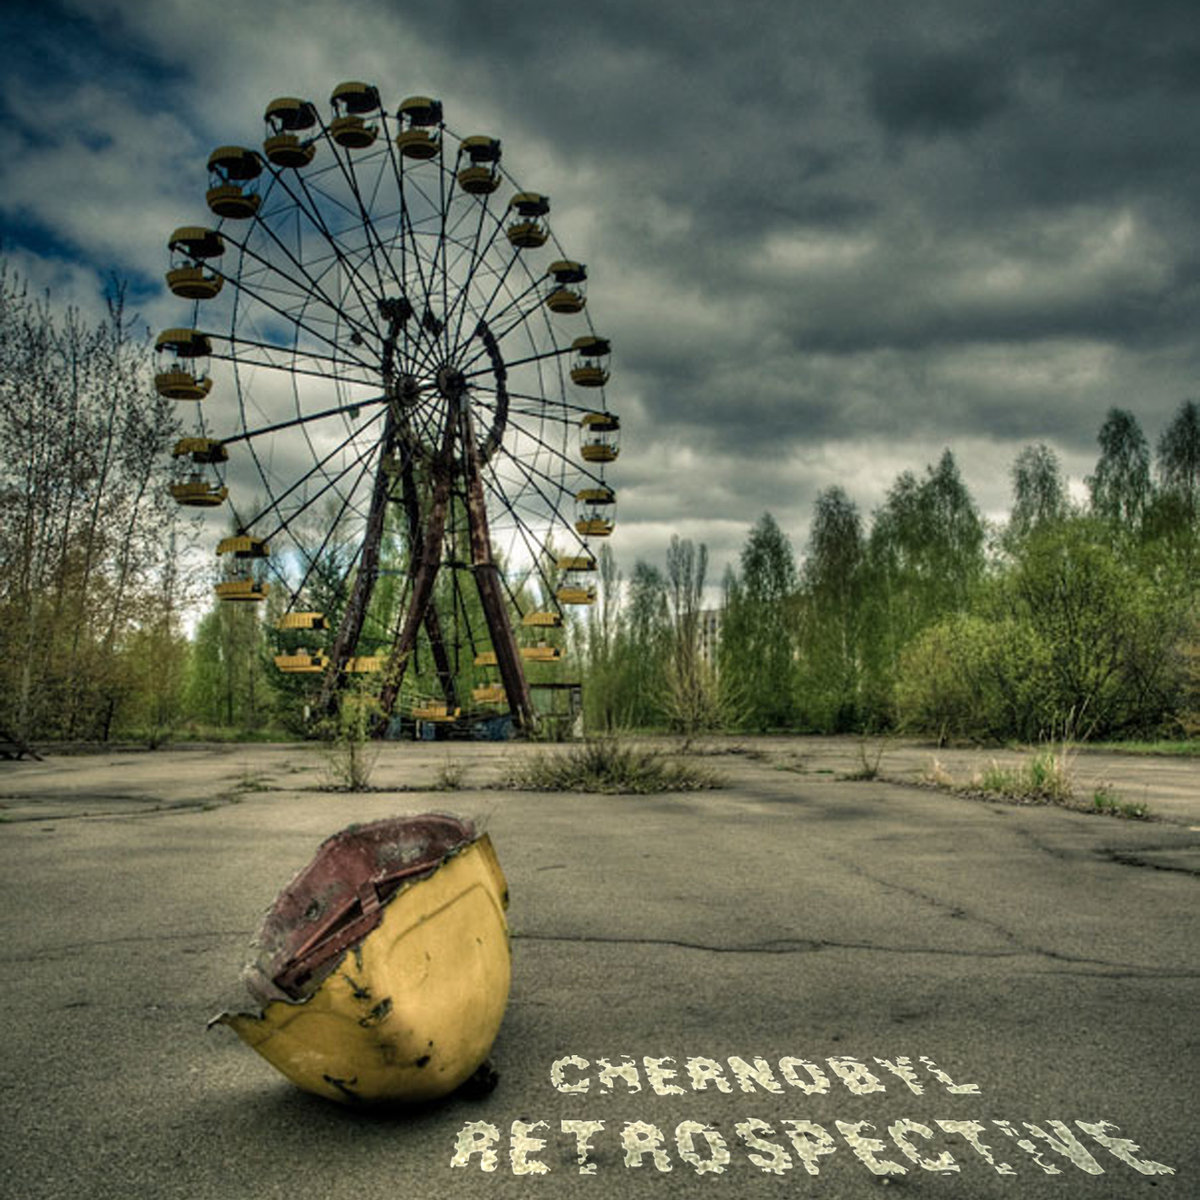 ABOUT - 26.04.86 @ 'Various Artists - Chernobyl Retrospective' album (electronic, ambient)